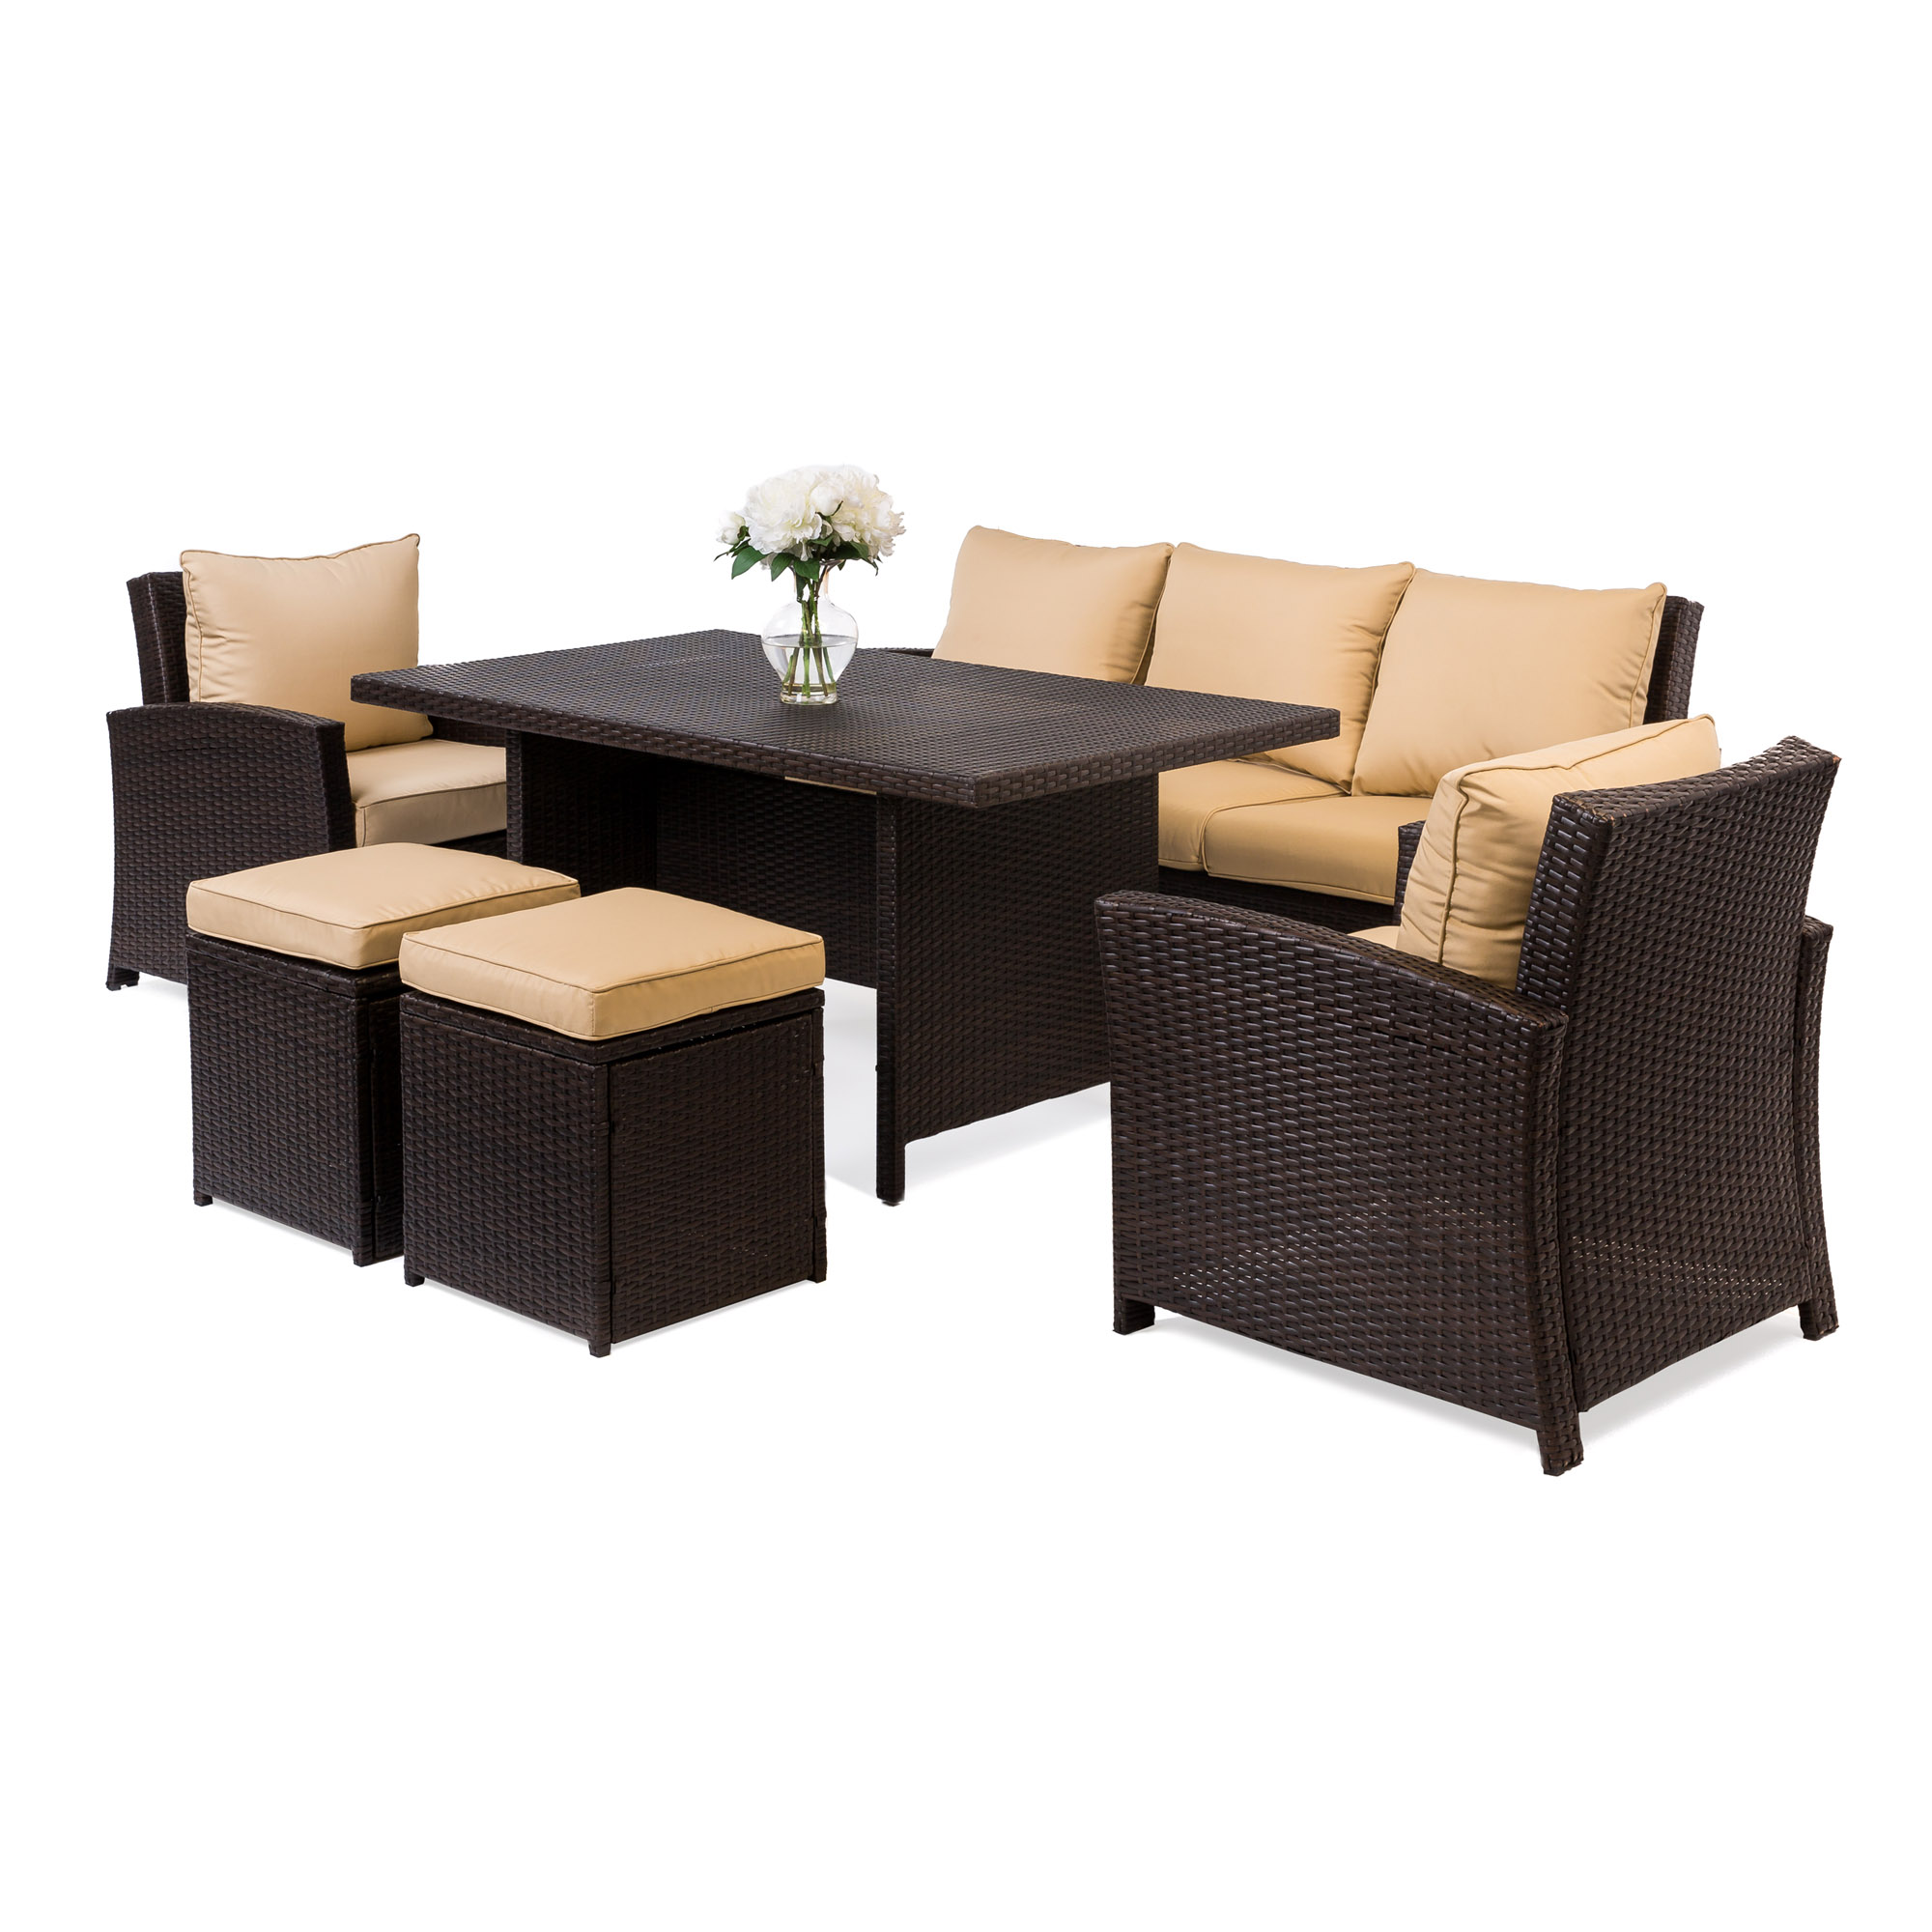 Dinner Sofa Best Choice Products 6 Piece Modular Patio Wicker Dining Sofa Set Weather Resistant Outdoor Living Furniture W 7 Seats Cushions Brown